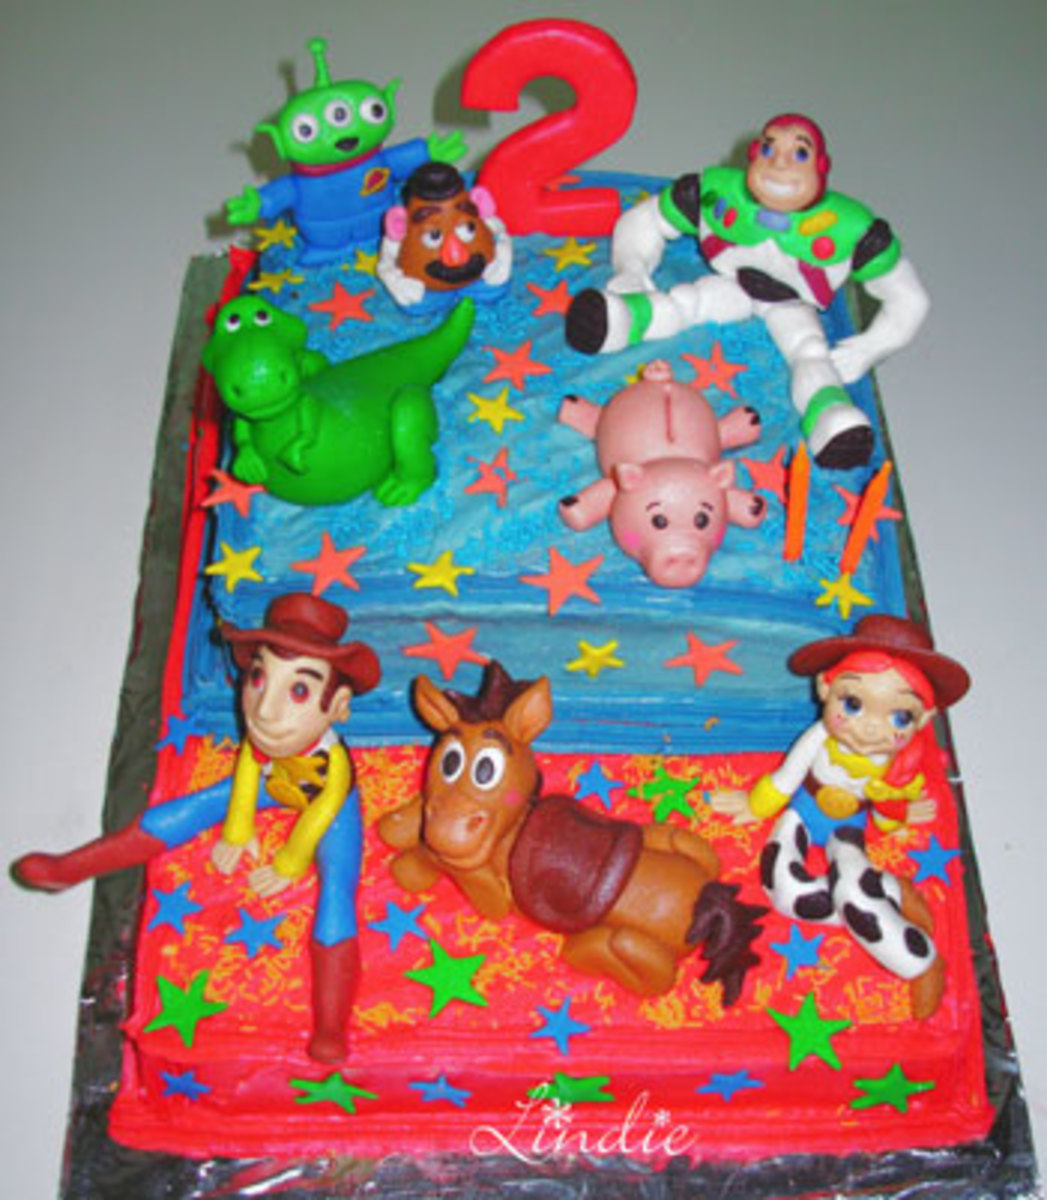 Toy Story Birthday Cakes, Cupcakes & Cookies